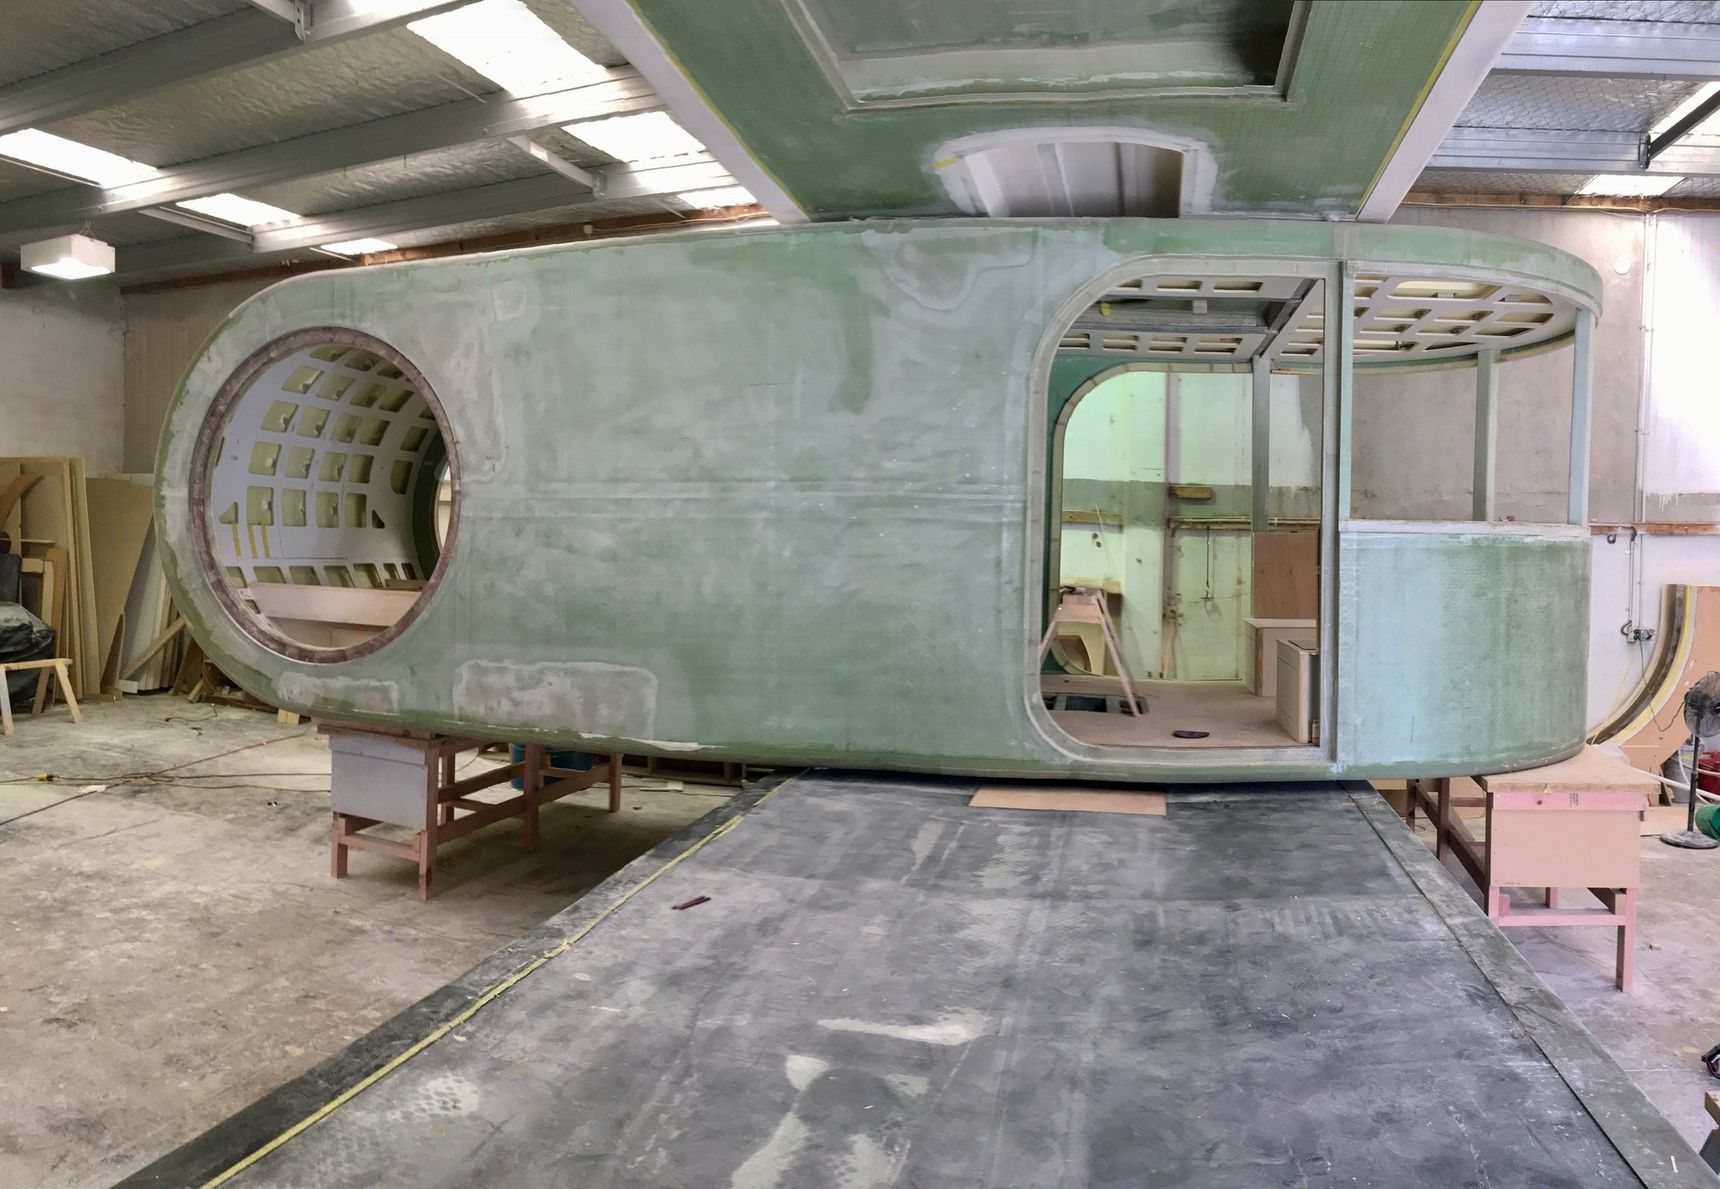 Expanding Trailer - In Construction